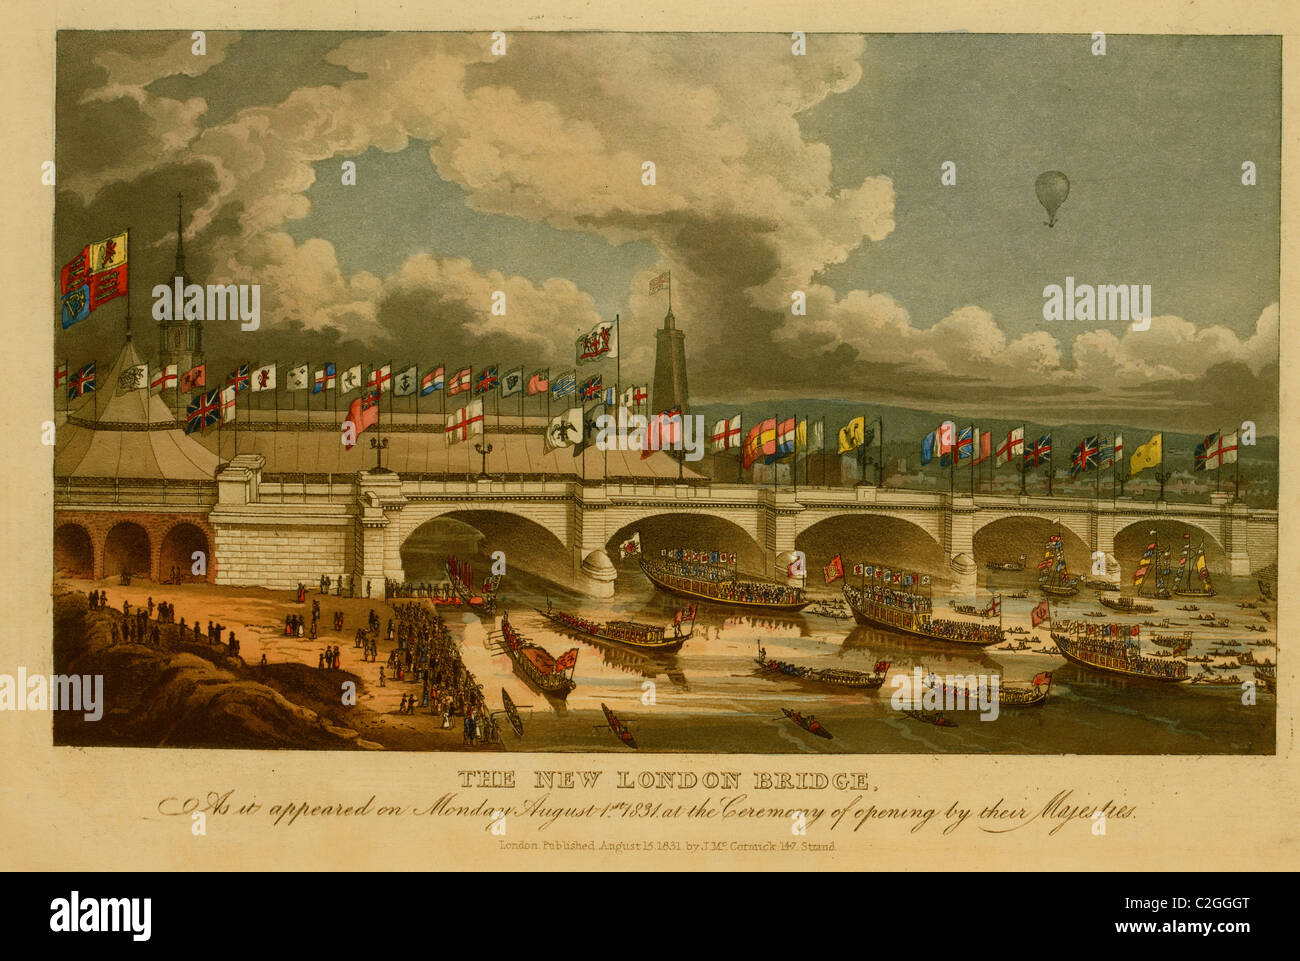 The new London bridge, as it appeared on Monday, August 1st, 1831, at the ceremony of opening by their Majesties - Stock Image